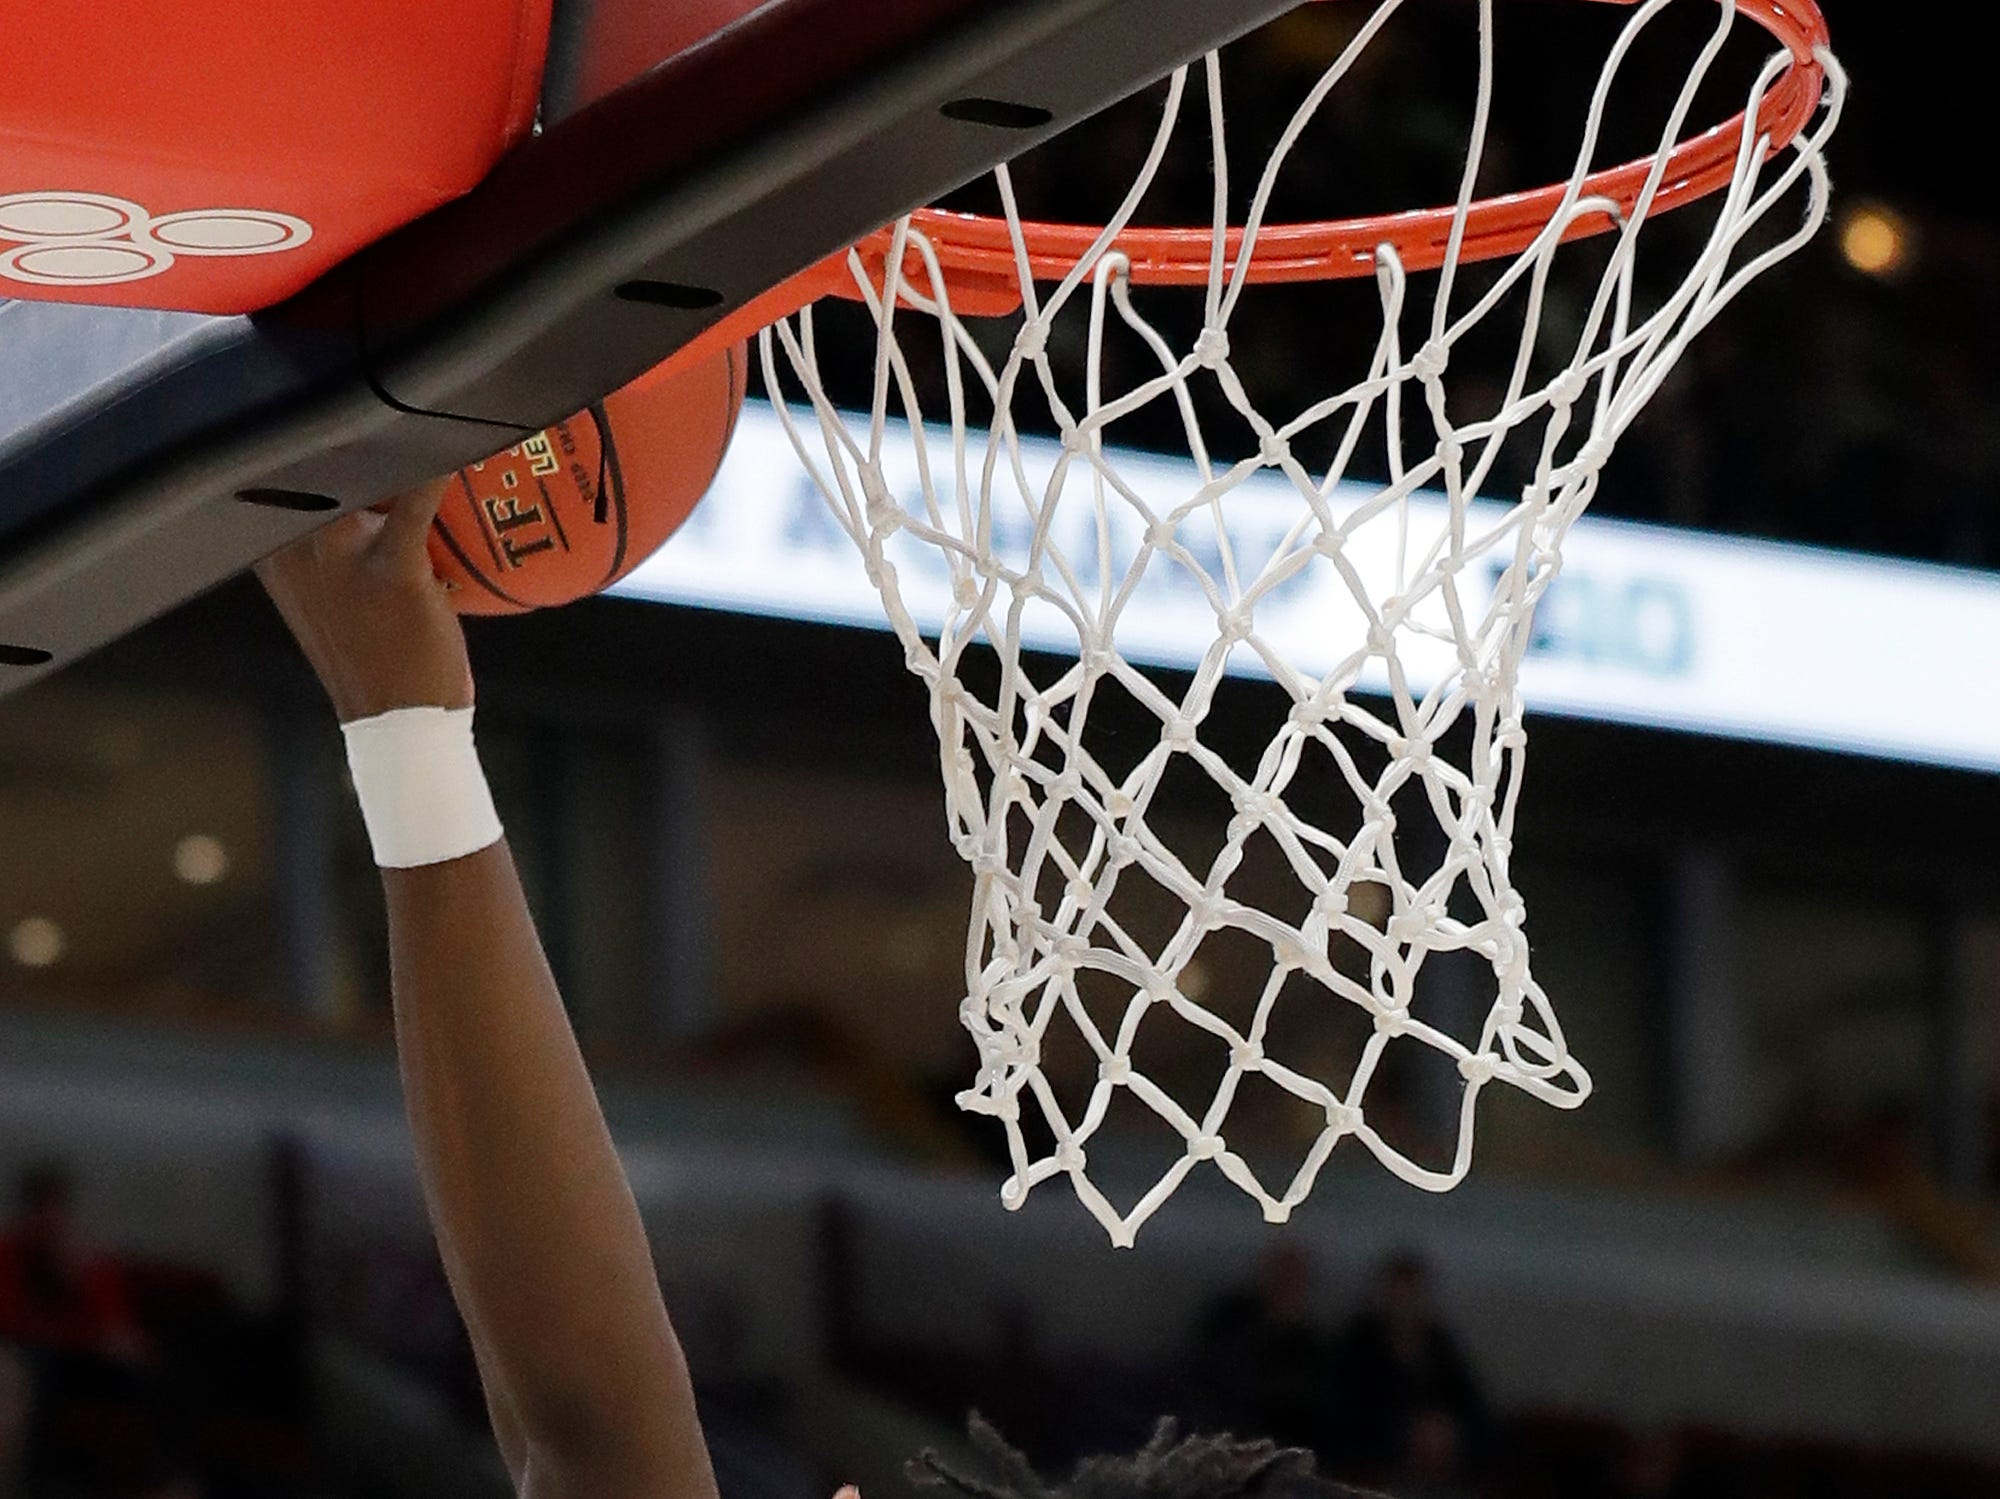 Minnesota's Daniel Oturu (25) goes up for a basket during the first half of an NCAA college basketball game against Purdue in the quarterfinals of the Big Ten Conference tournament, Friday, March 15, 2019, in Chicago. (AP Photo/Nam Y. Huh)